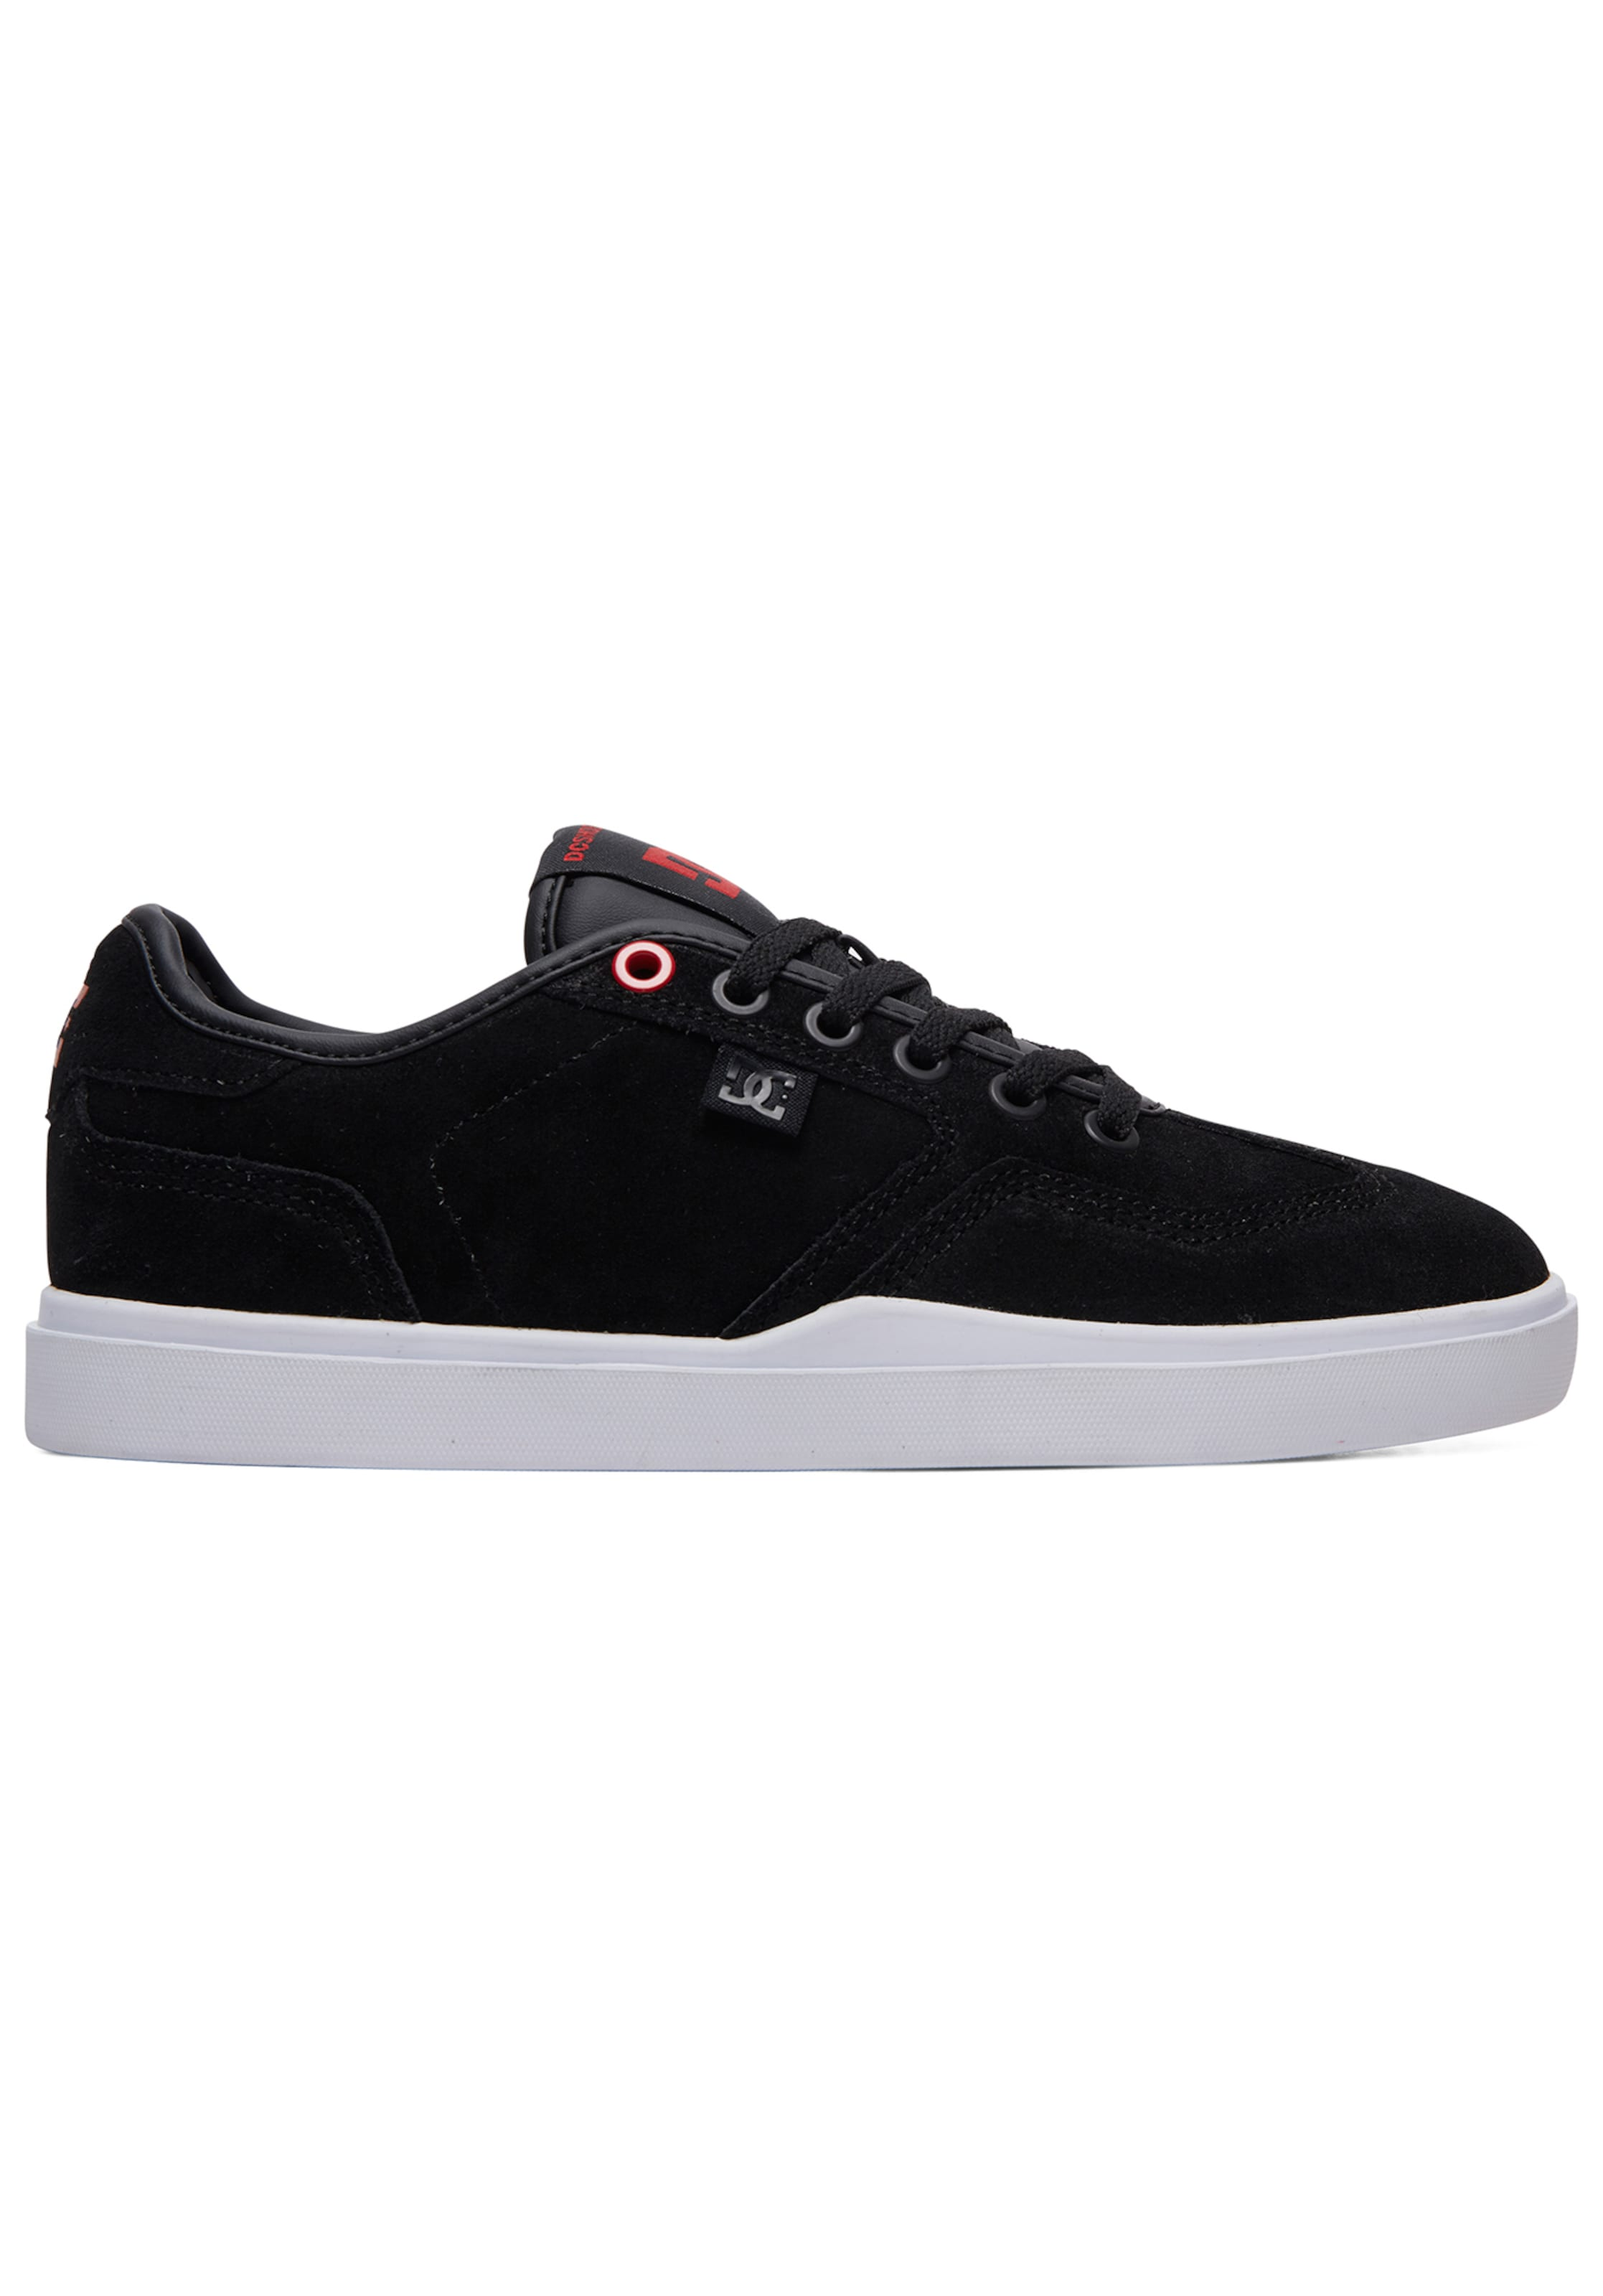 Dc Shoes Schwarz In 'vestrey Sneaker Se' wvN08Onm